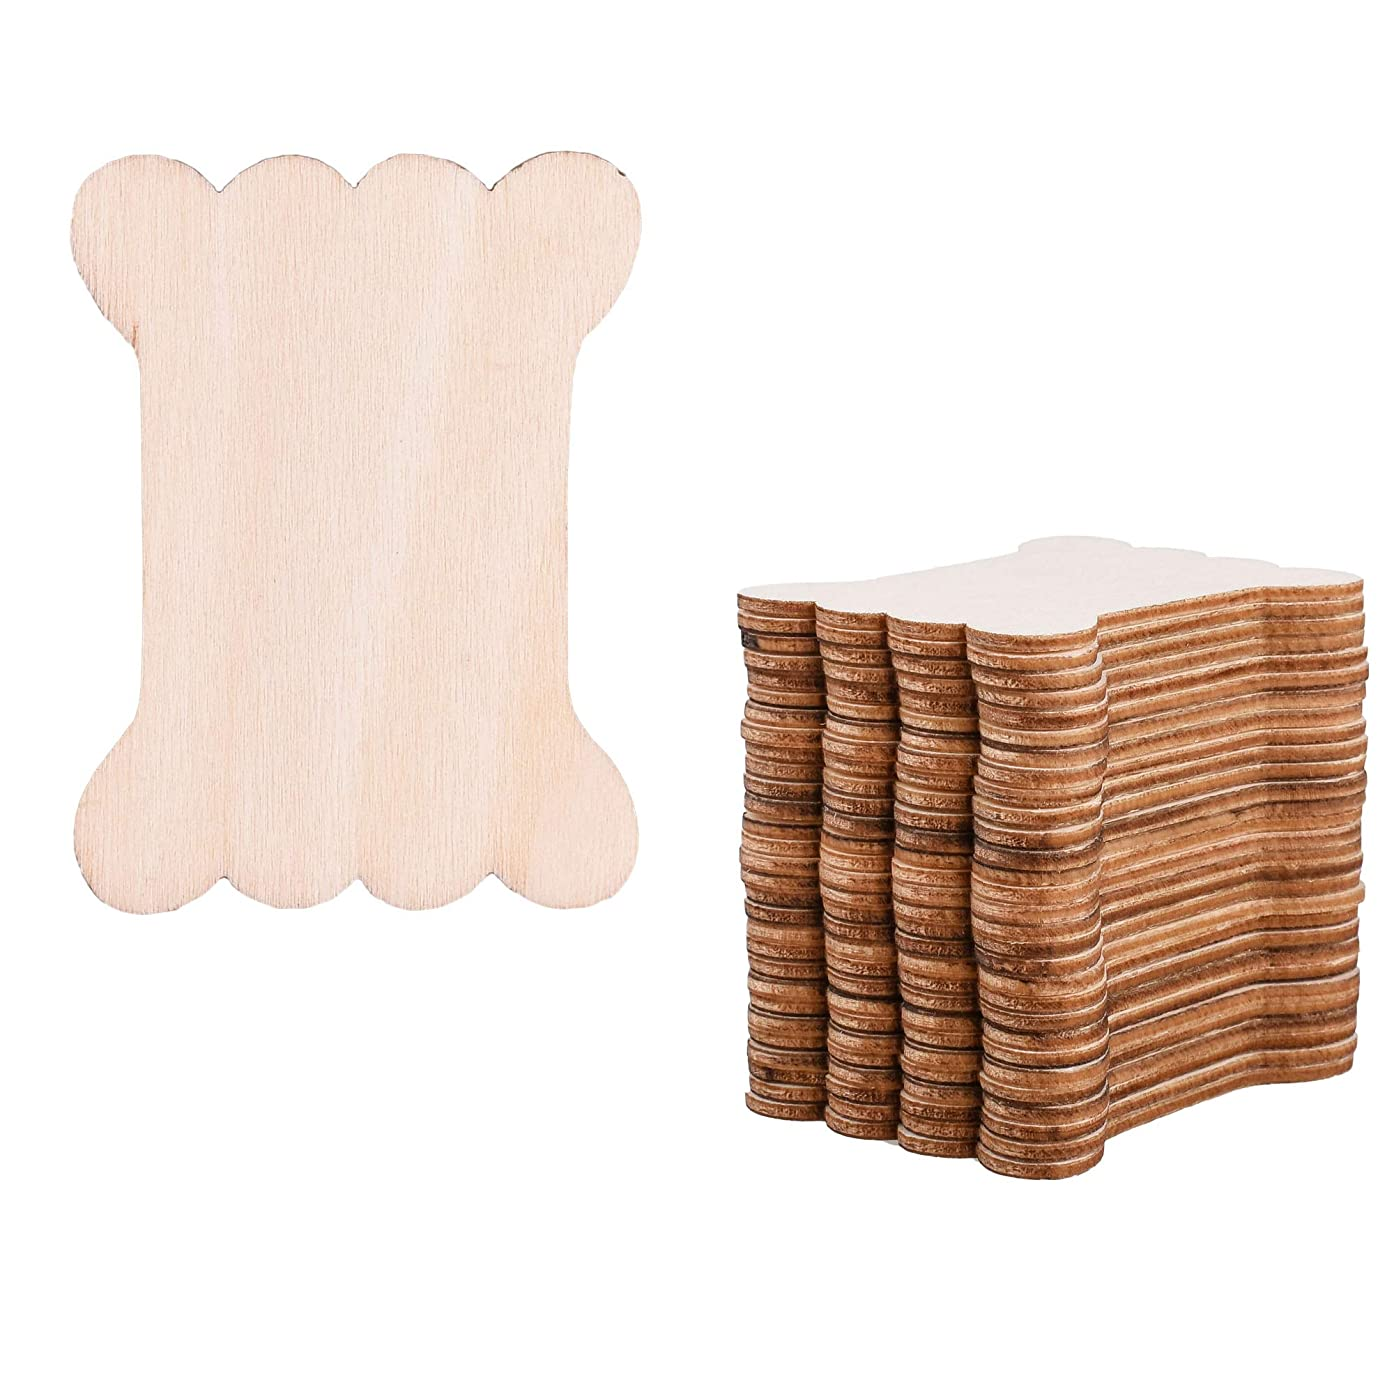 Cosmos 30 Pieces Packed Natural Wood Thread Bobbins Spool Bone Shaped for Craft DIY Project, Cross Stitch Embroidery Floss Sewing Tools